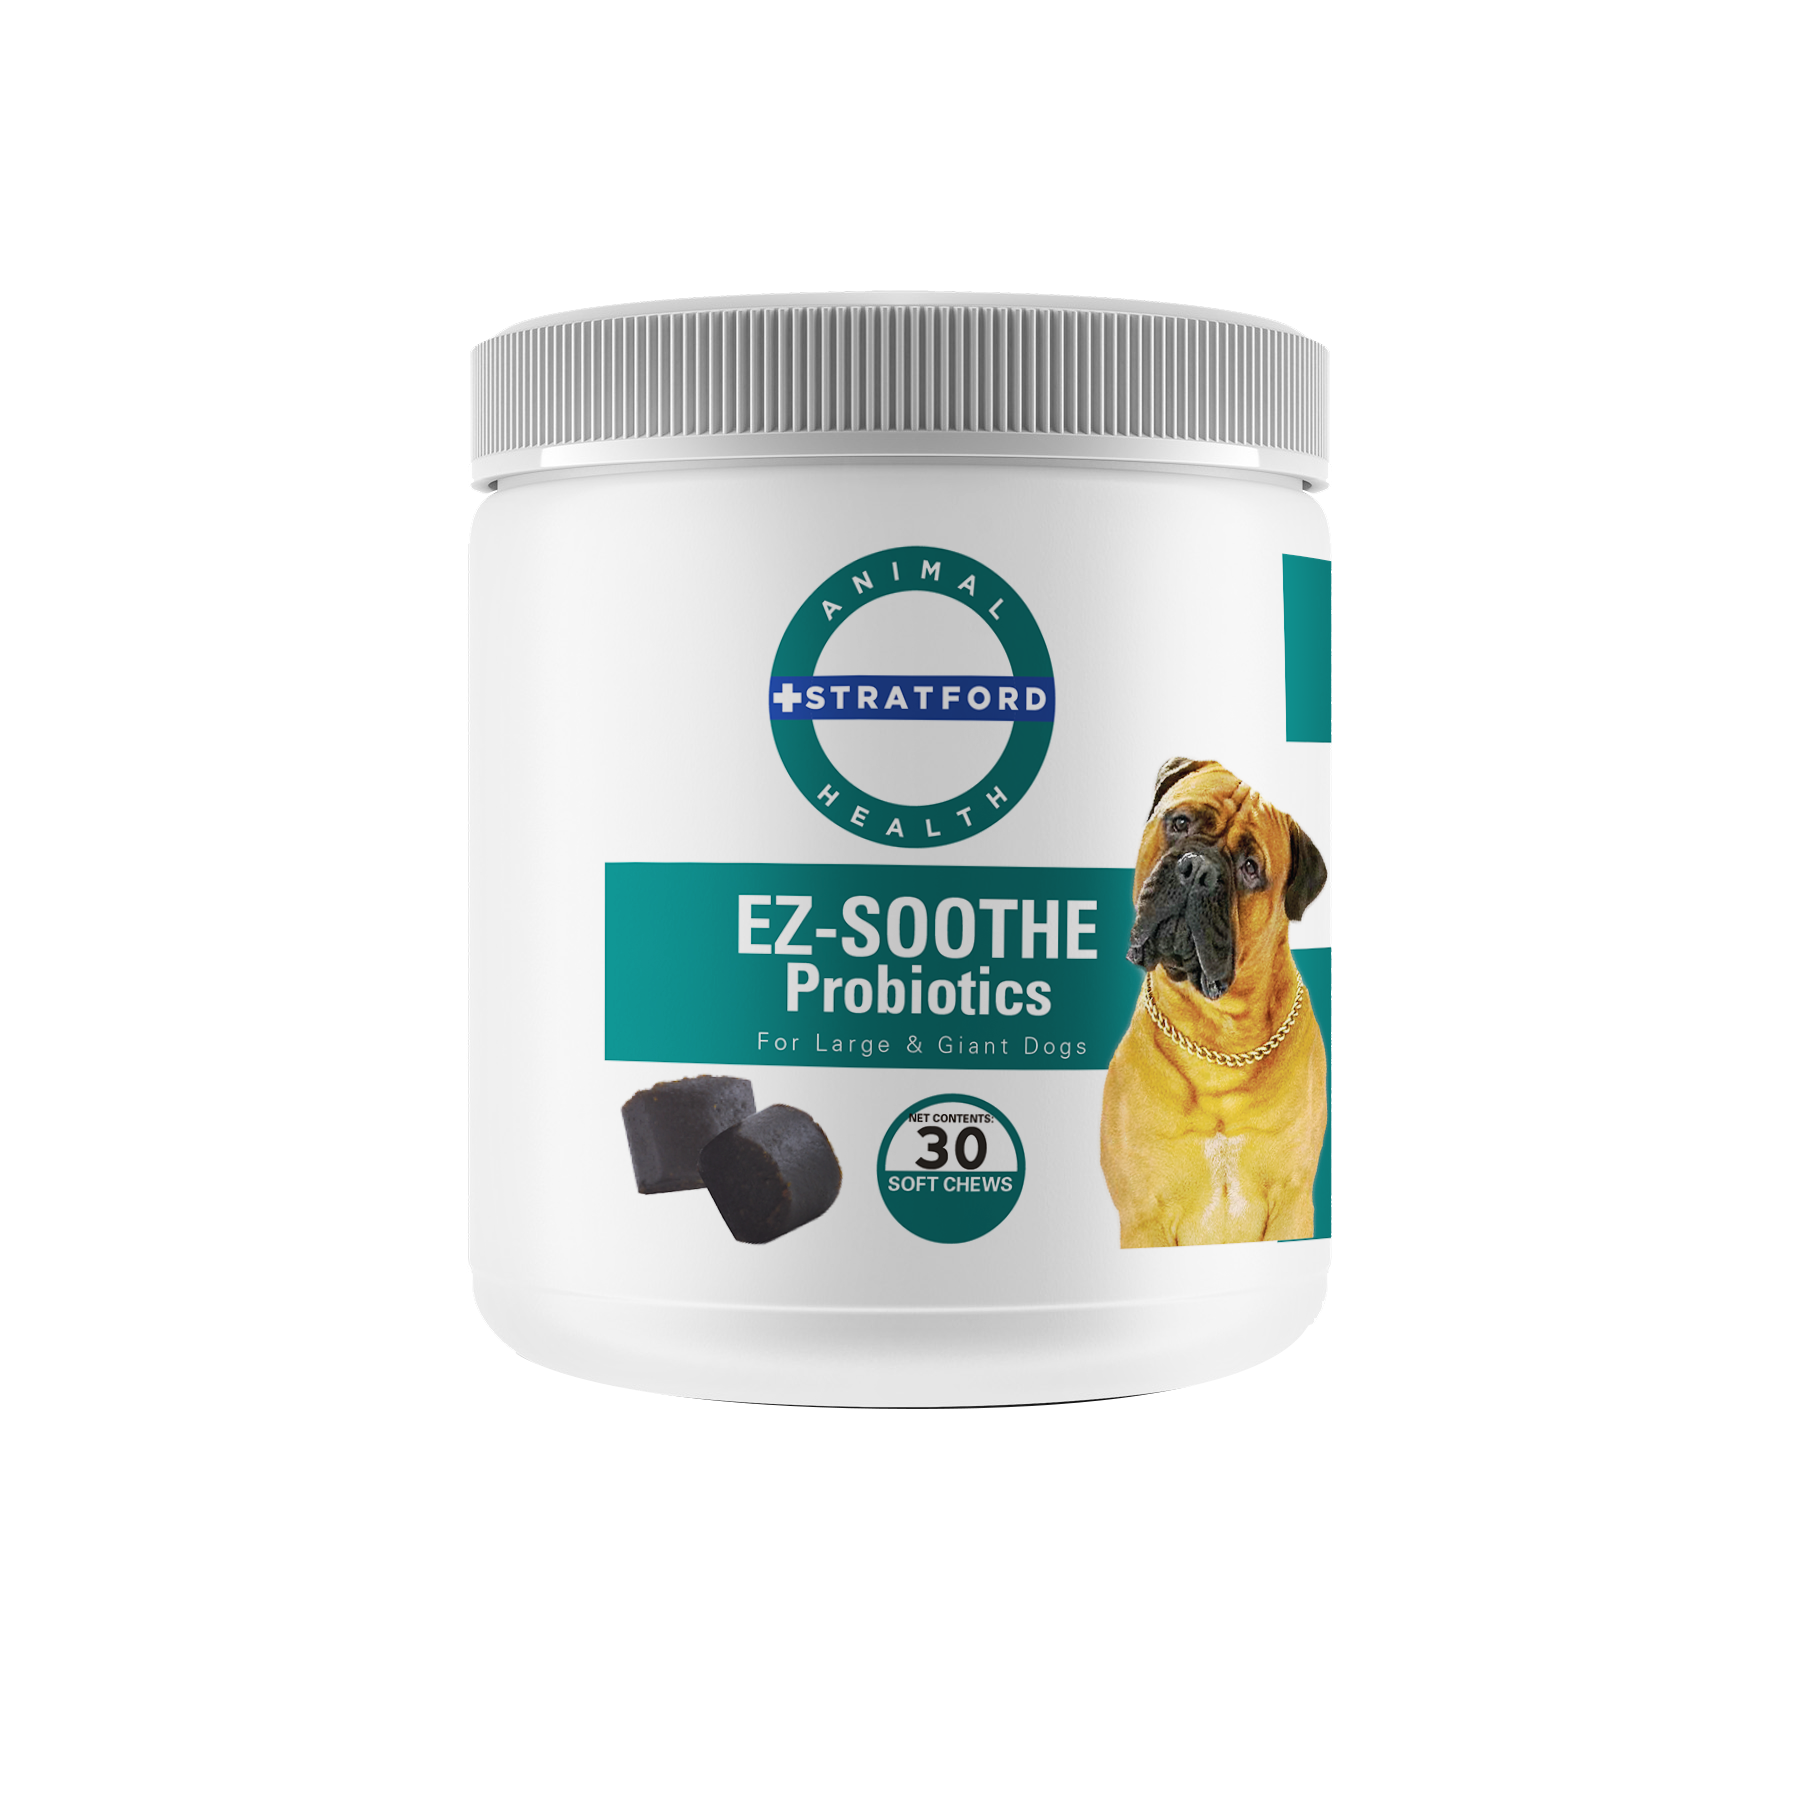 PROBIOTIC PASTE & SOFT CHEWS